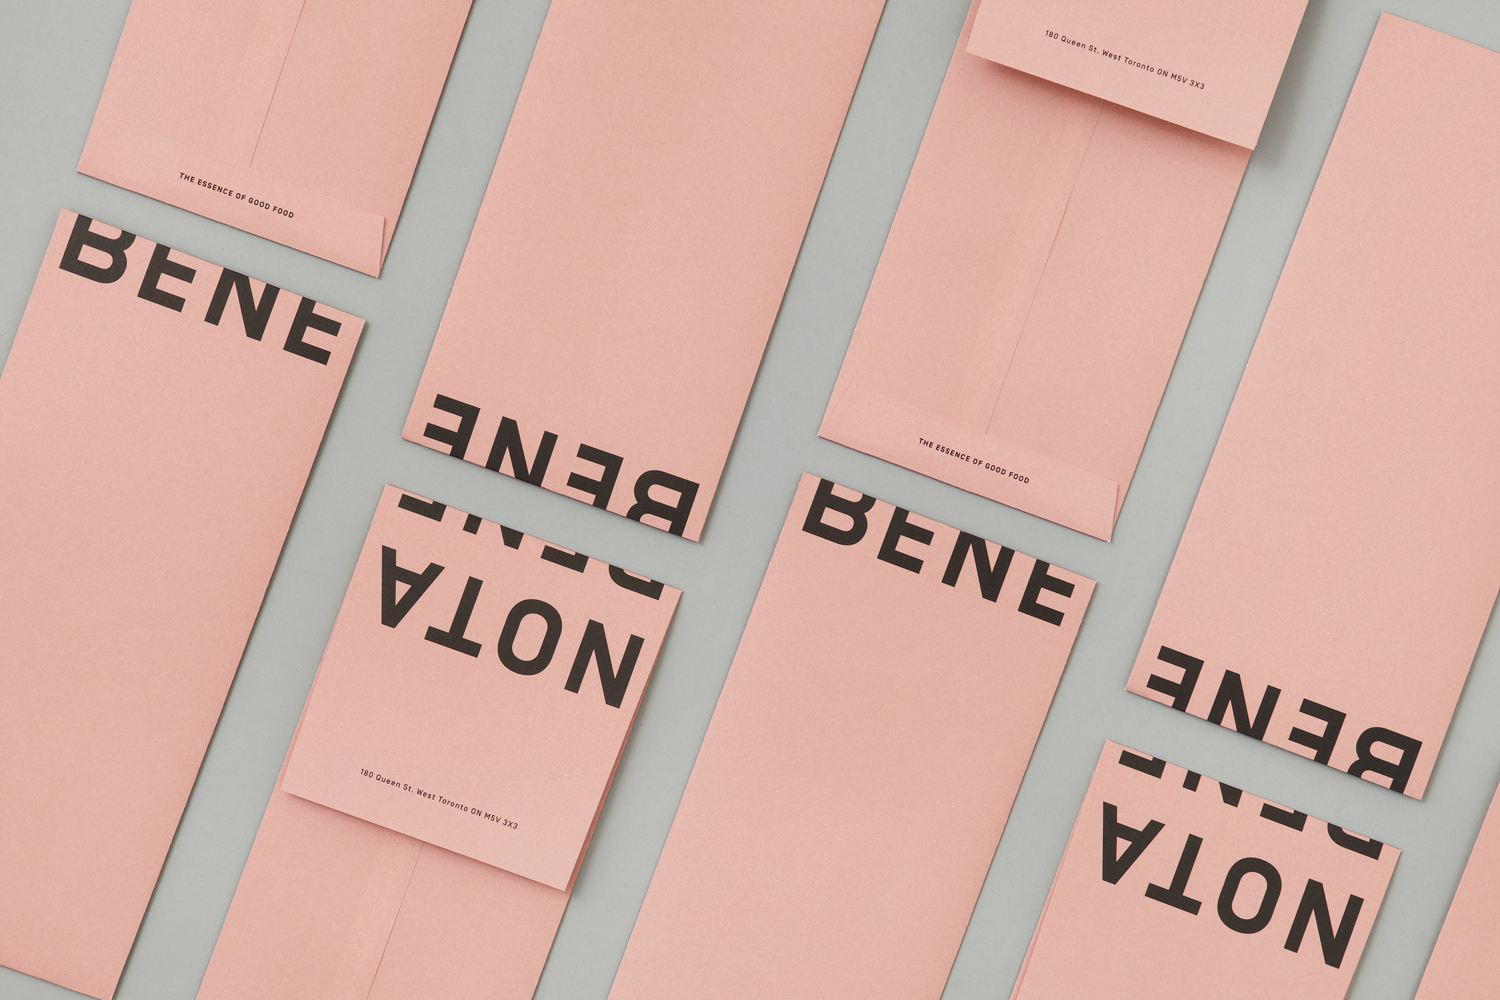 Brand identity and branded envelopes for Toronto restaurant Nota Bene by graphic design studio Blok, Canada